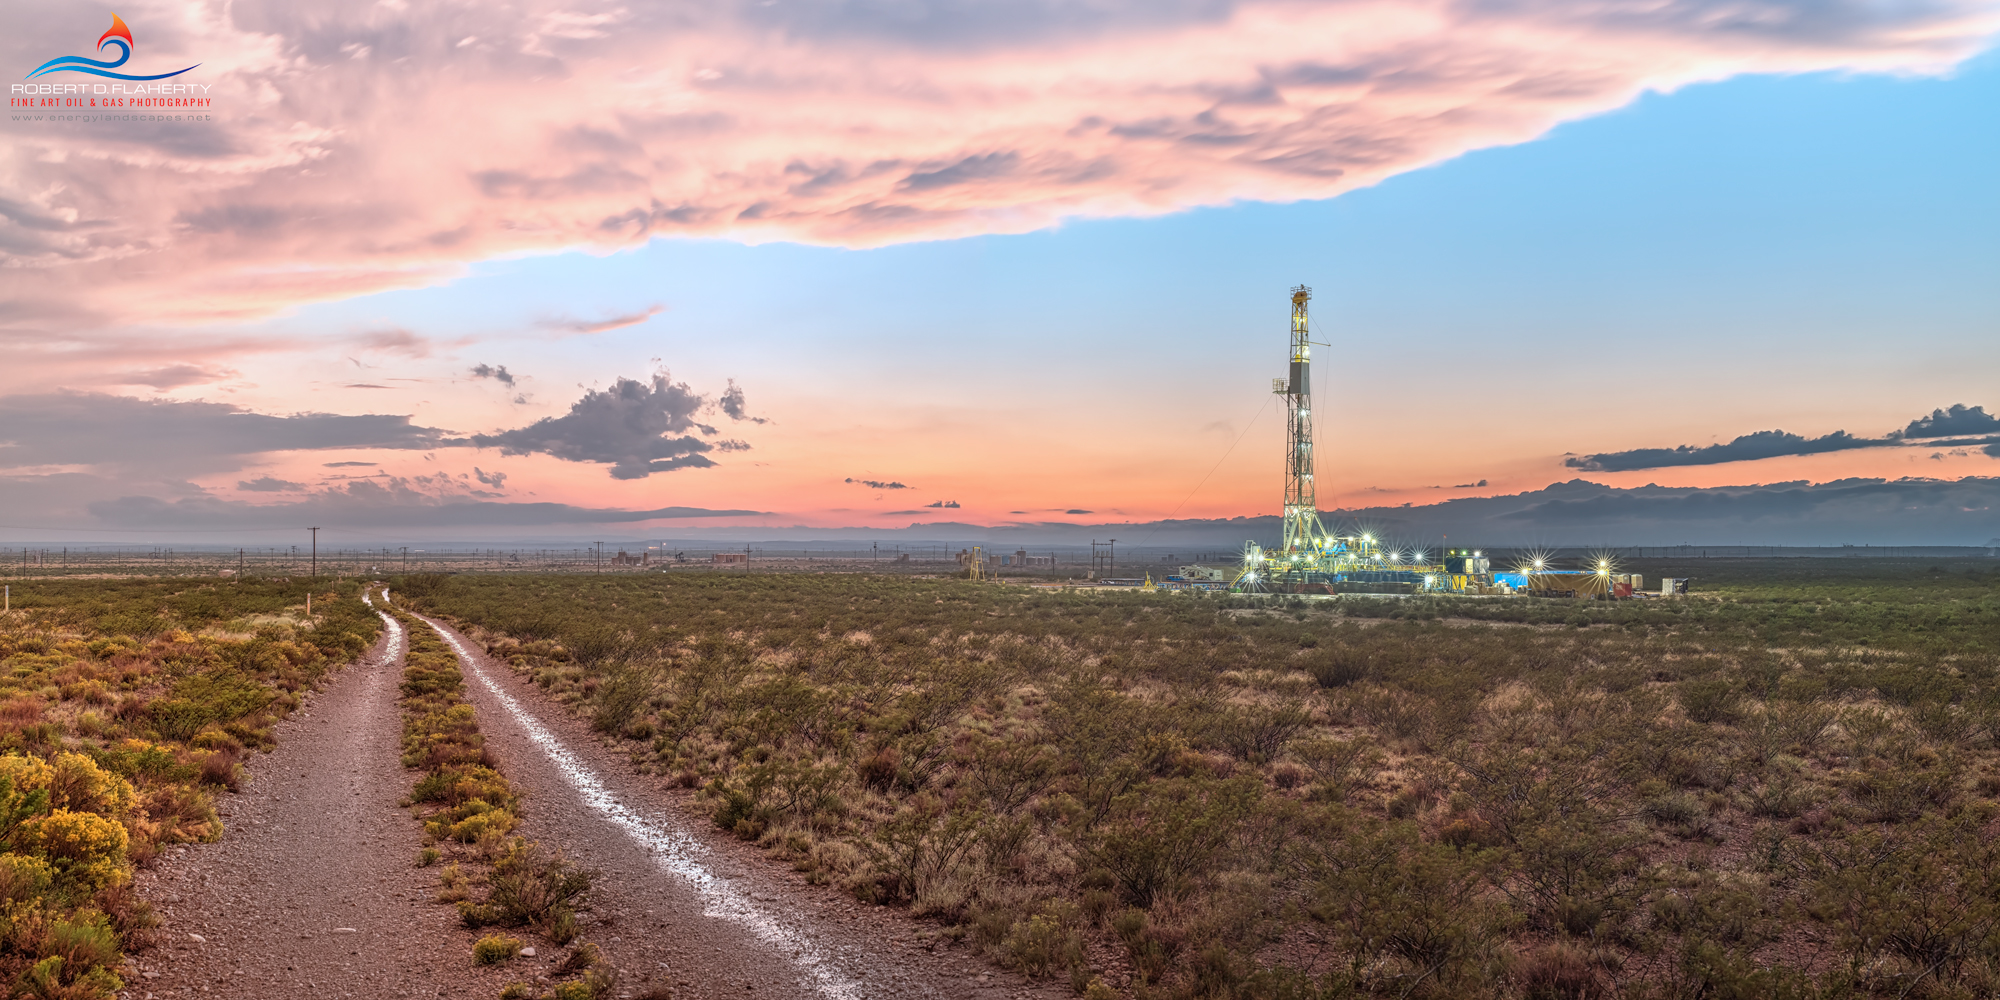 Drilling rig, Delaware Basin, Rain, Thunderstorm, evening, New Mexico, Carlsbad, Artesia, Silver Oak, Rig 1, panorama, high resolution, mural, fine art mural, October, monsoon , photo